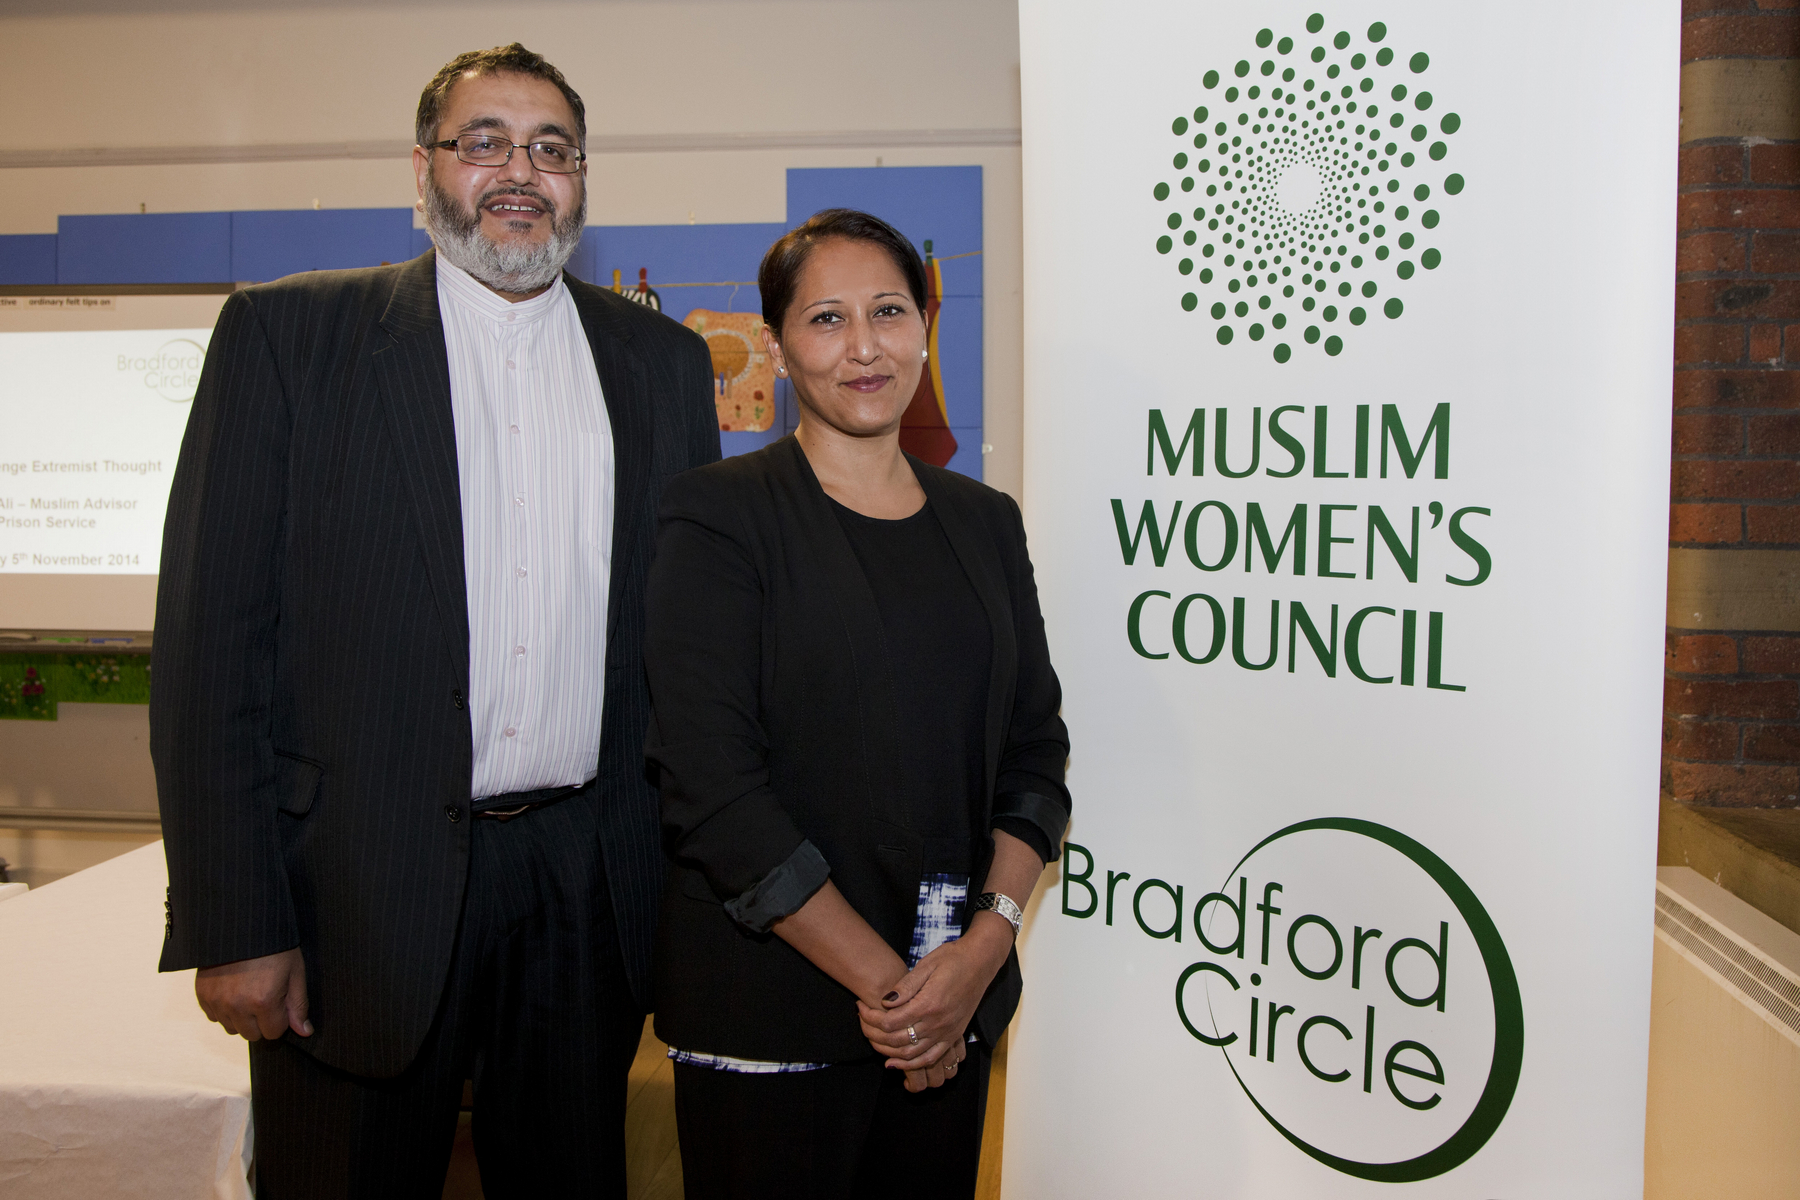 Bana Gora of the Muslim Women's Council of Bradford